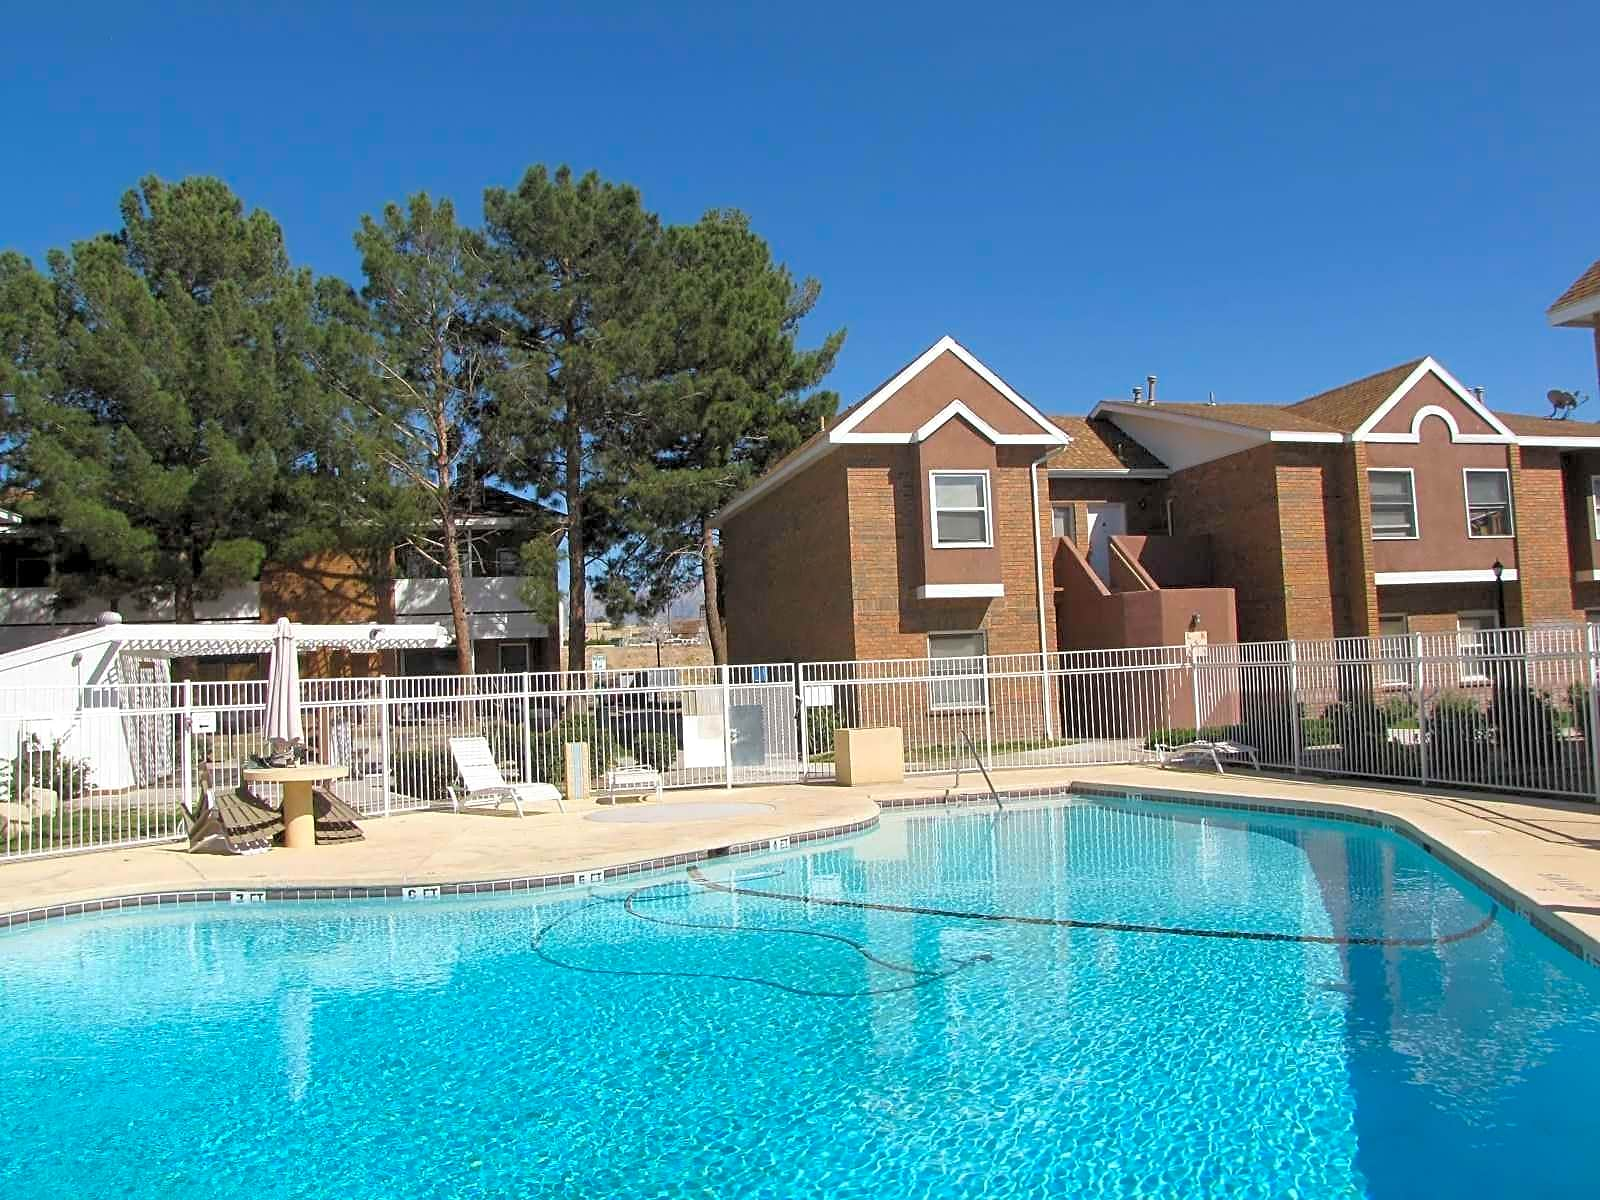 Woodcrest apartment homes las cruces nm 88001 for Home builders in las cruces nm